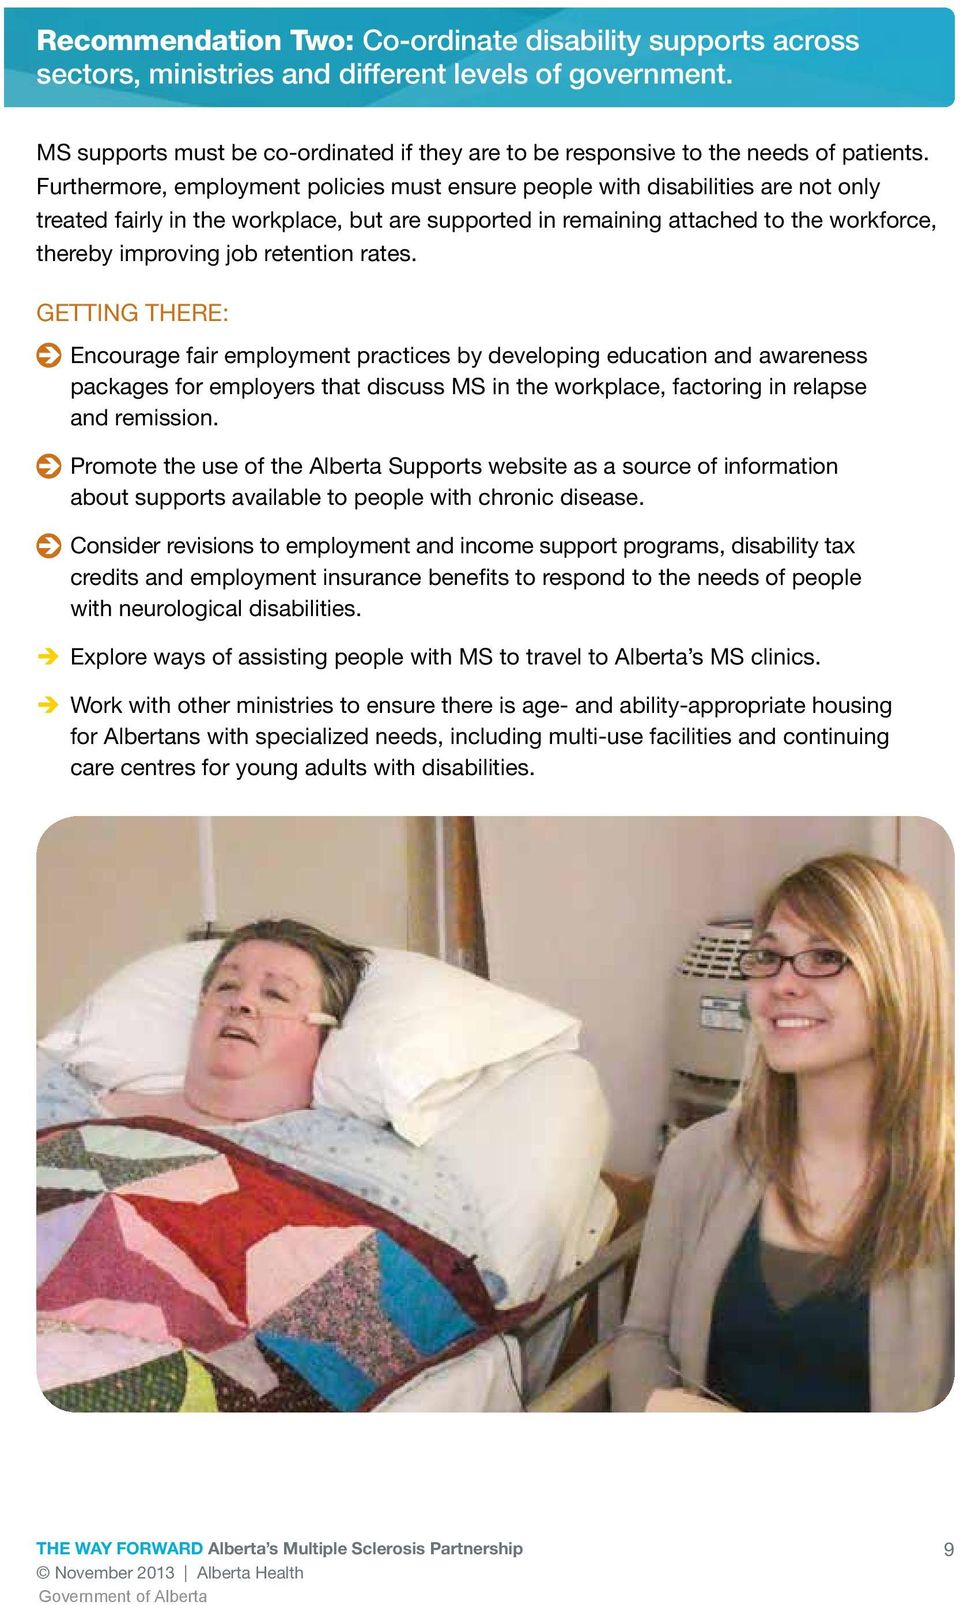 Furthermore, employment policies must ensure people with disabilities are not only treated fairly in the workplace, but are supported in remaining attached to the workforce, thereby improving job